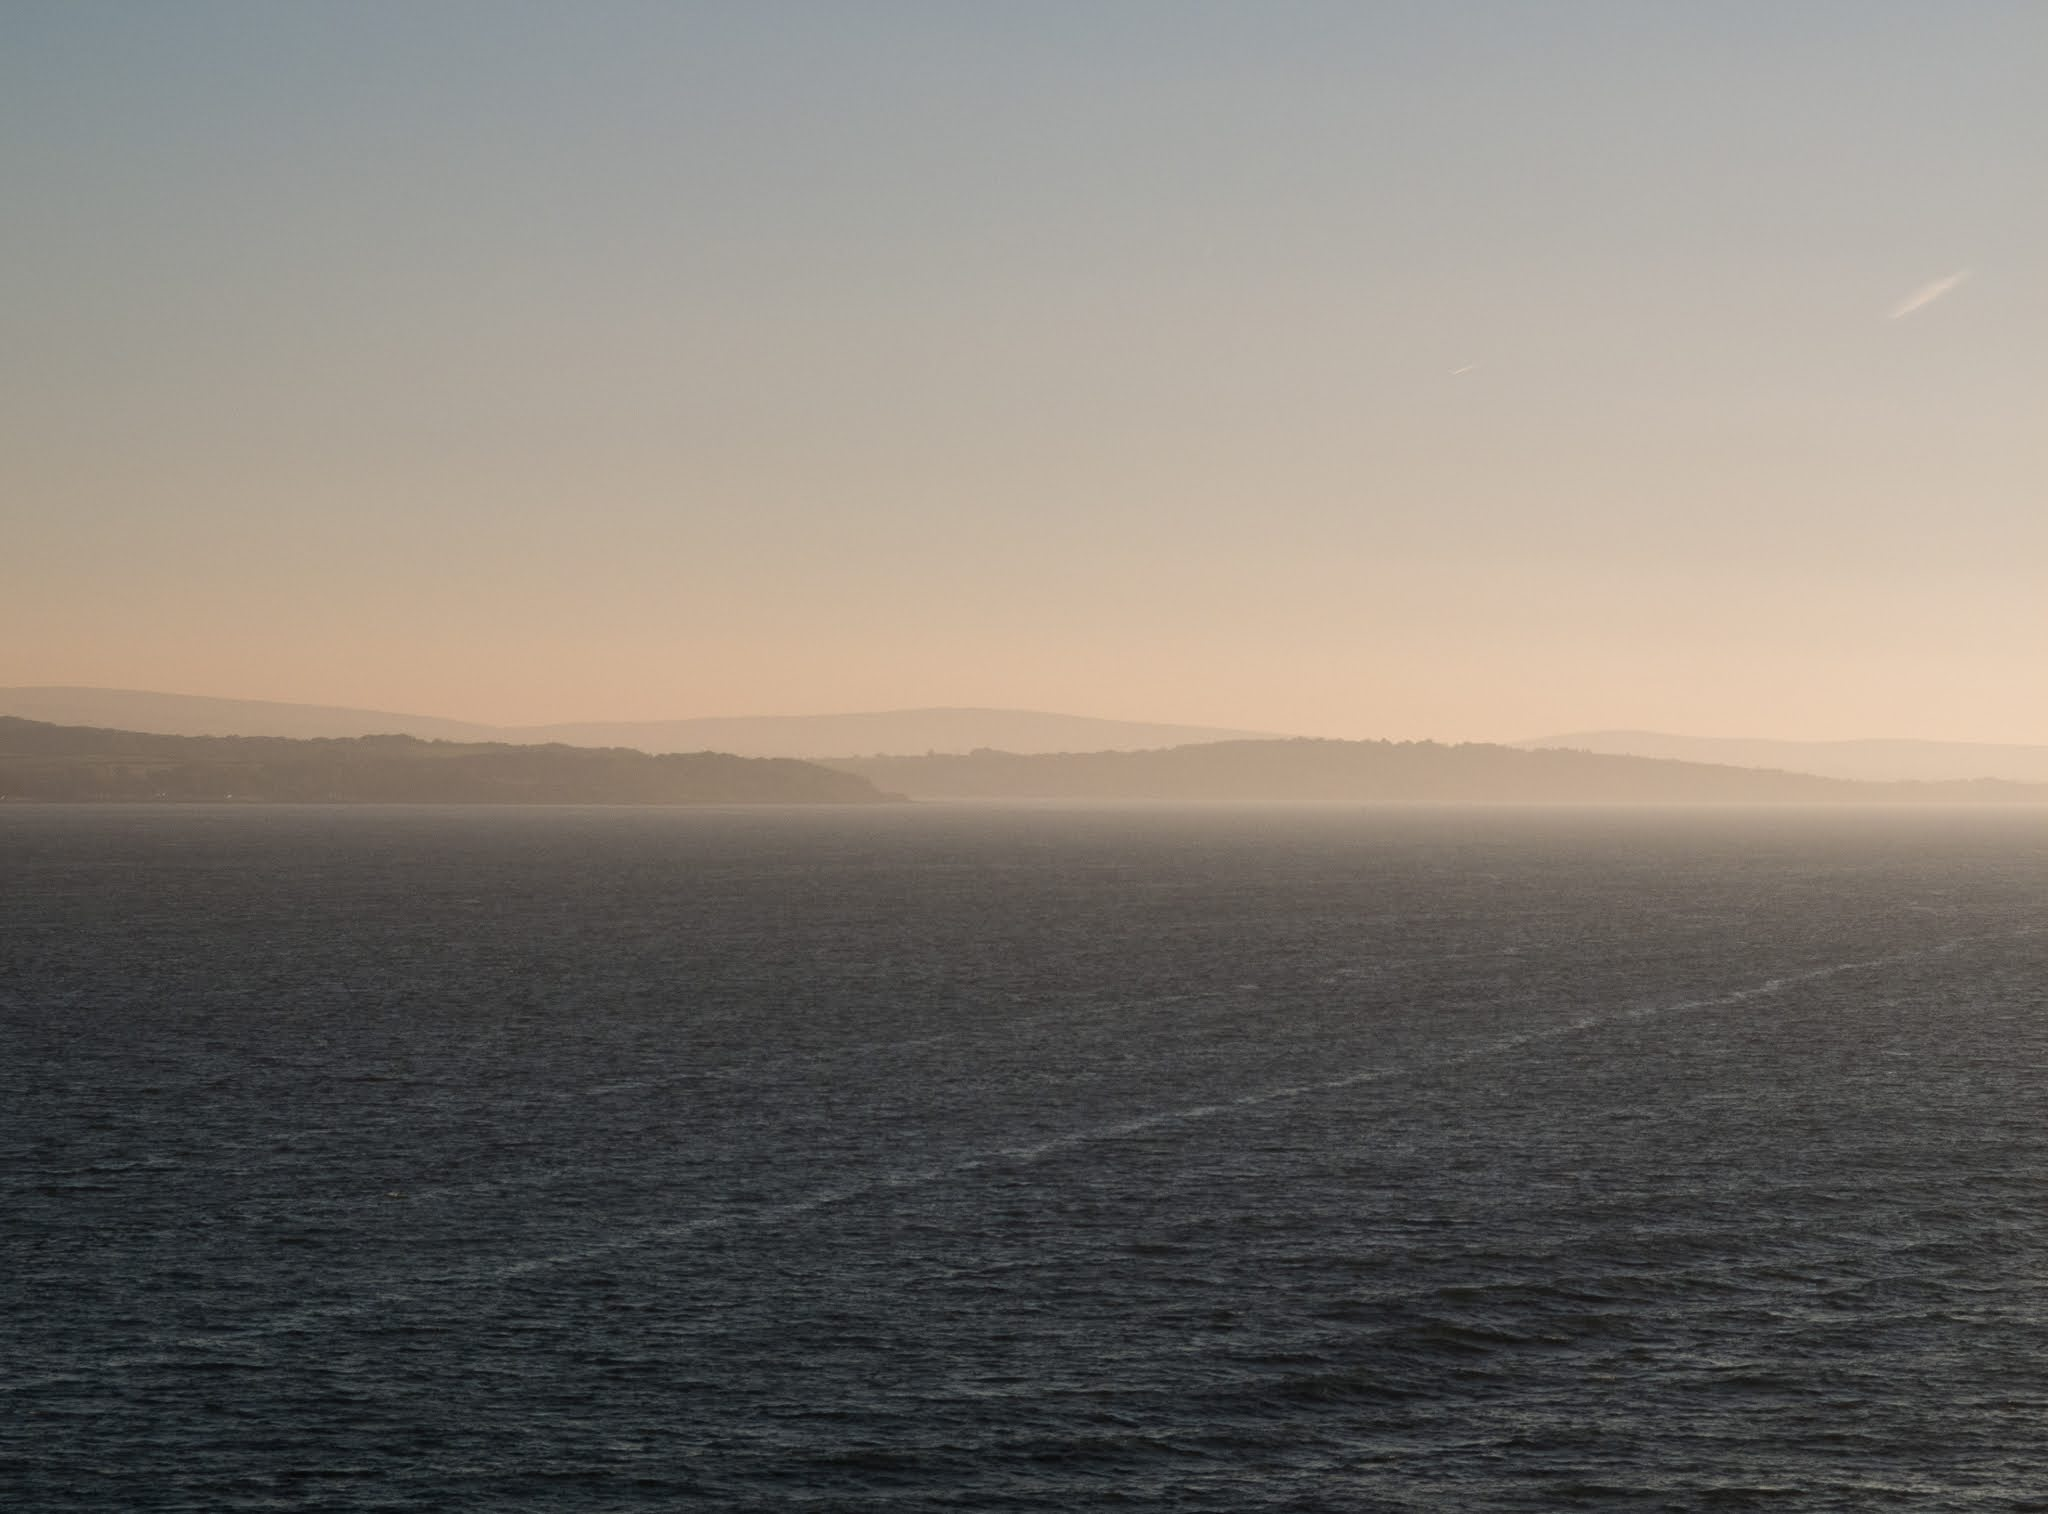 Sailing from Southampton across the English Channel at golden hour.